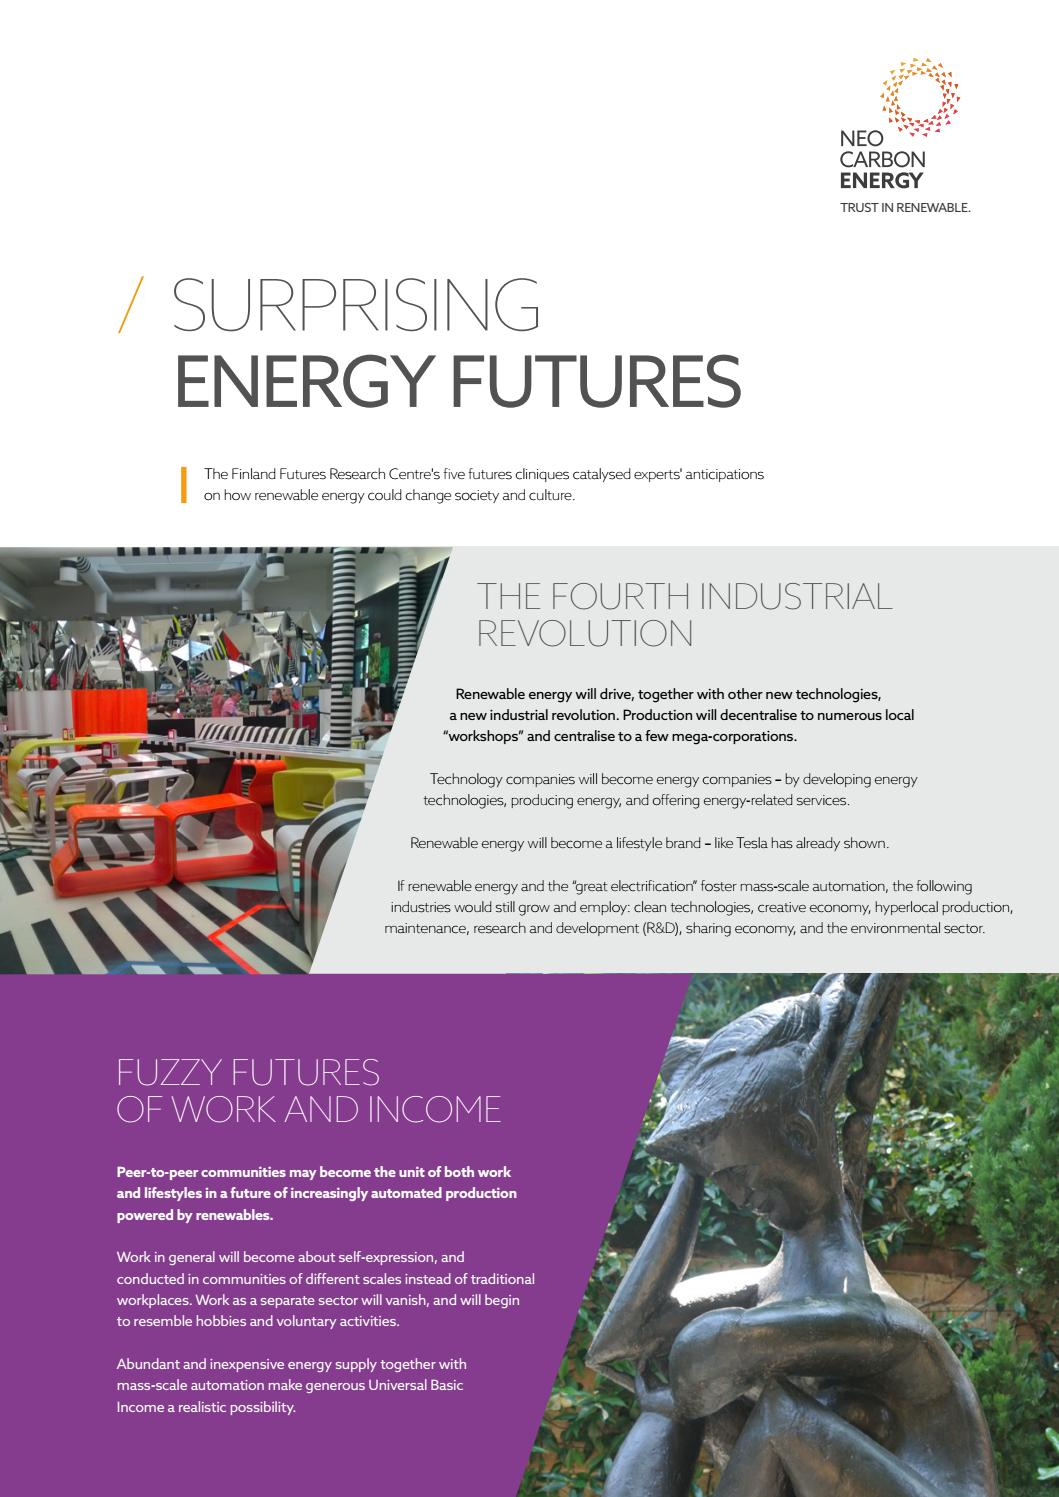 Neo carbon energy – IMPACT AND RESULTS by Avidly - issuu